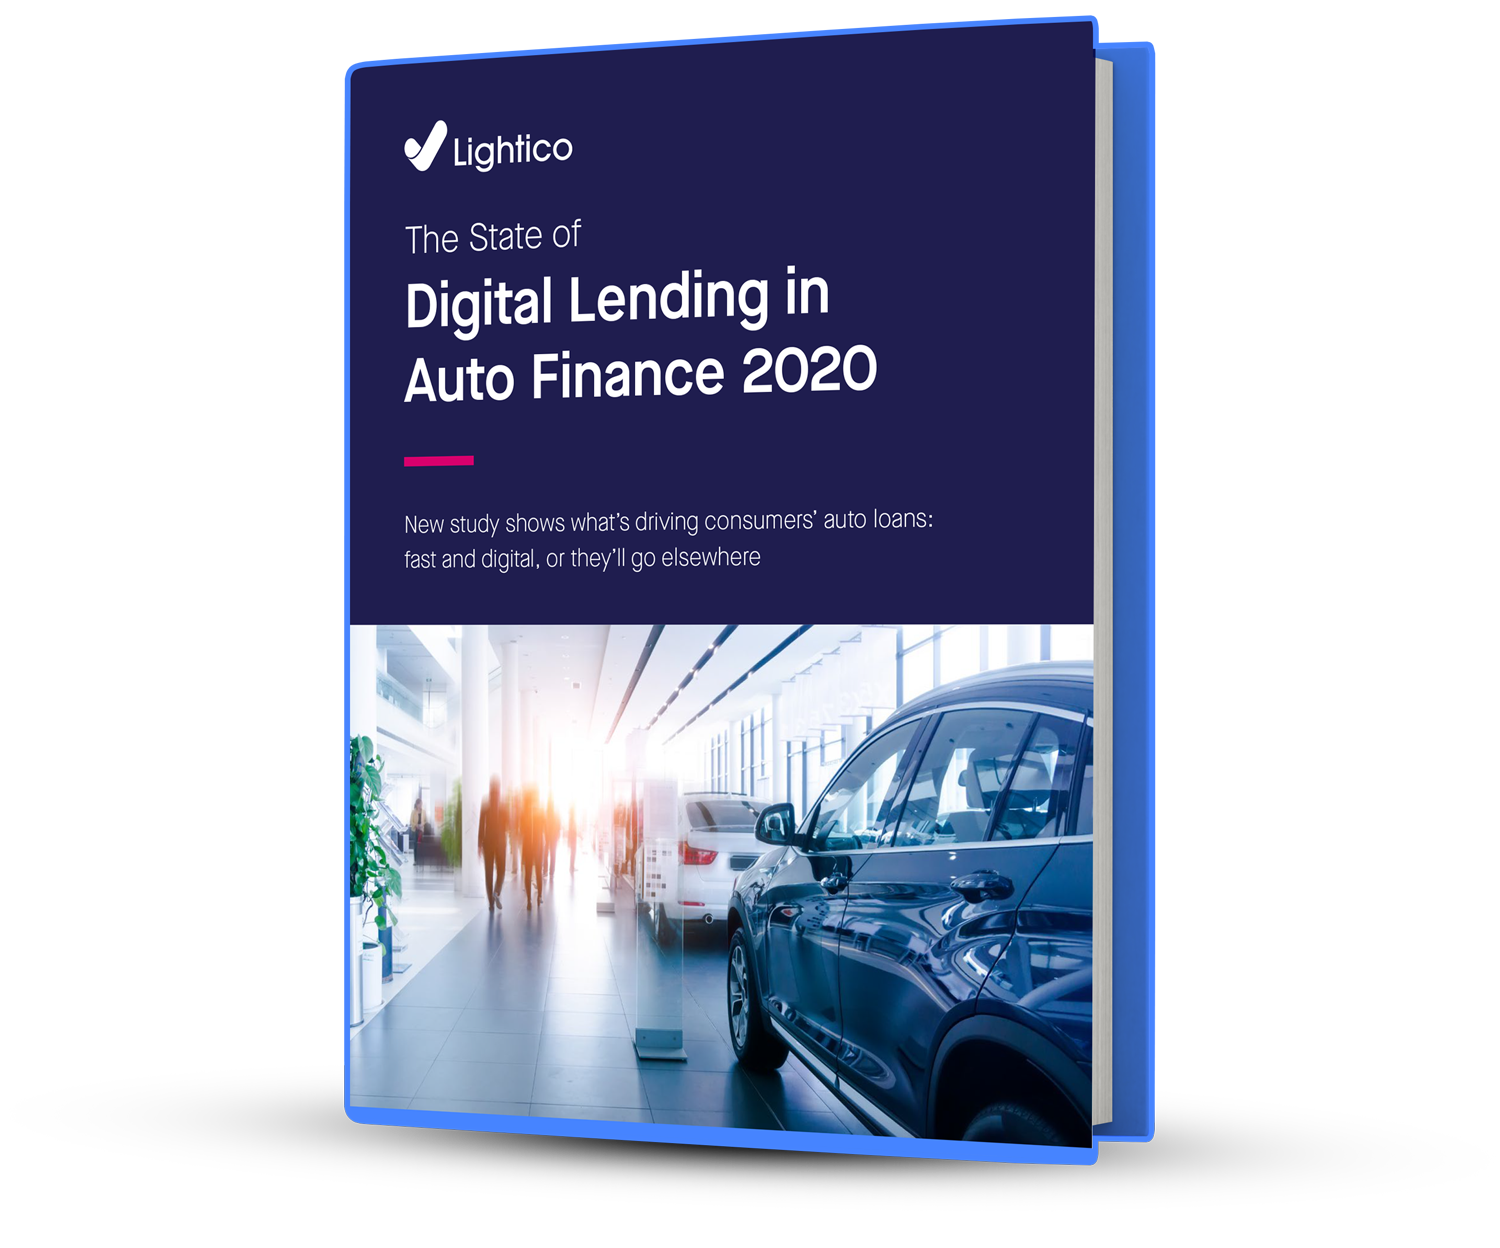 State-of-Digital-Lending-in-Auto-Finance-2020-MOCKUP-Border